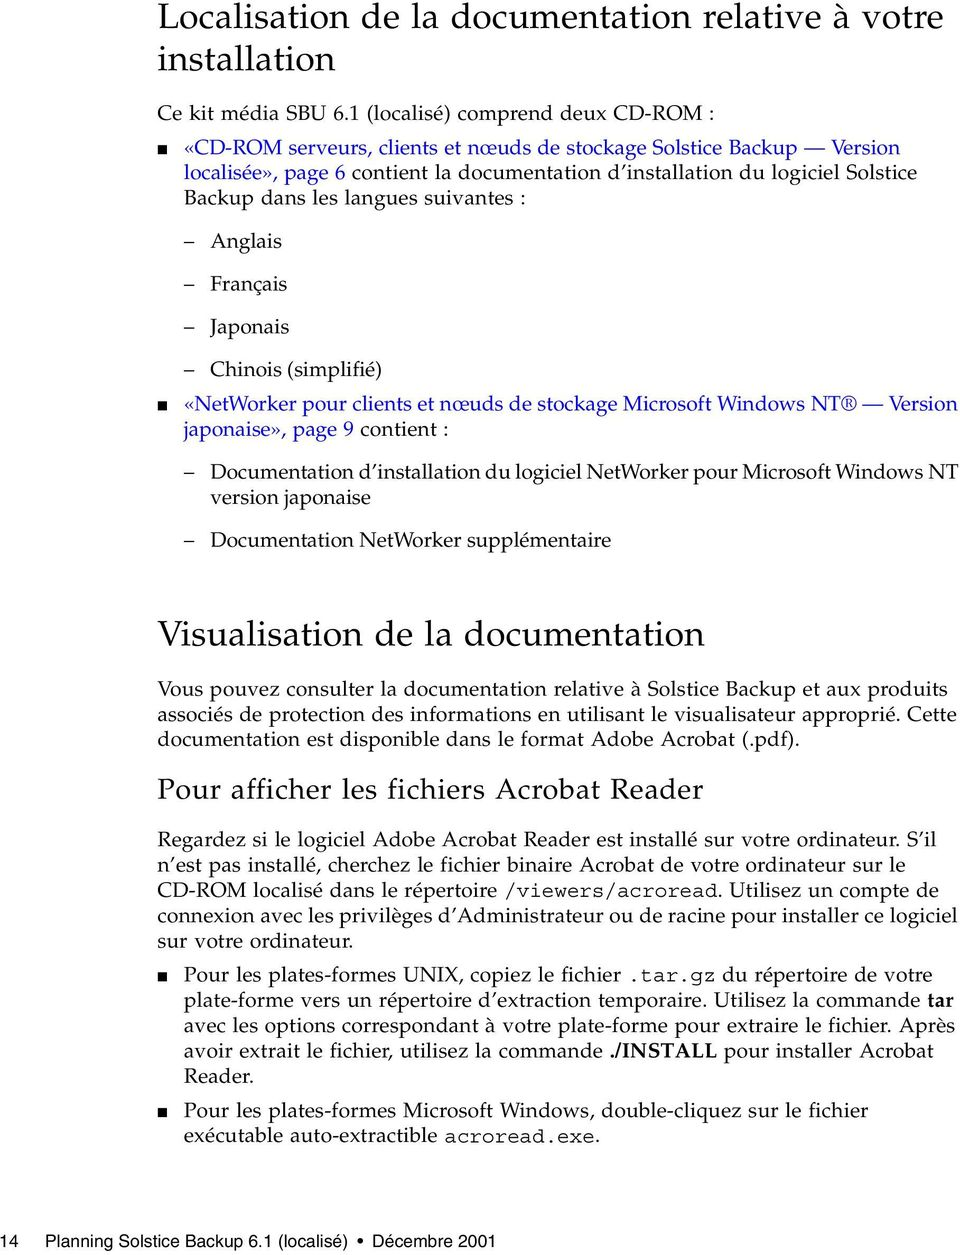 les langues suivantes : Anglais Français Japonais Chinois (simplifié) «NetWorker pour clients et nœuds de stockage Microsoft Windows NT Version japonaise», page 9 contient : Documentation d